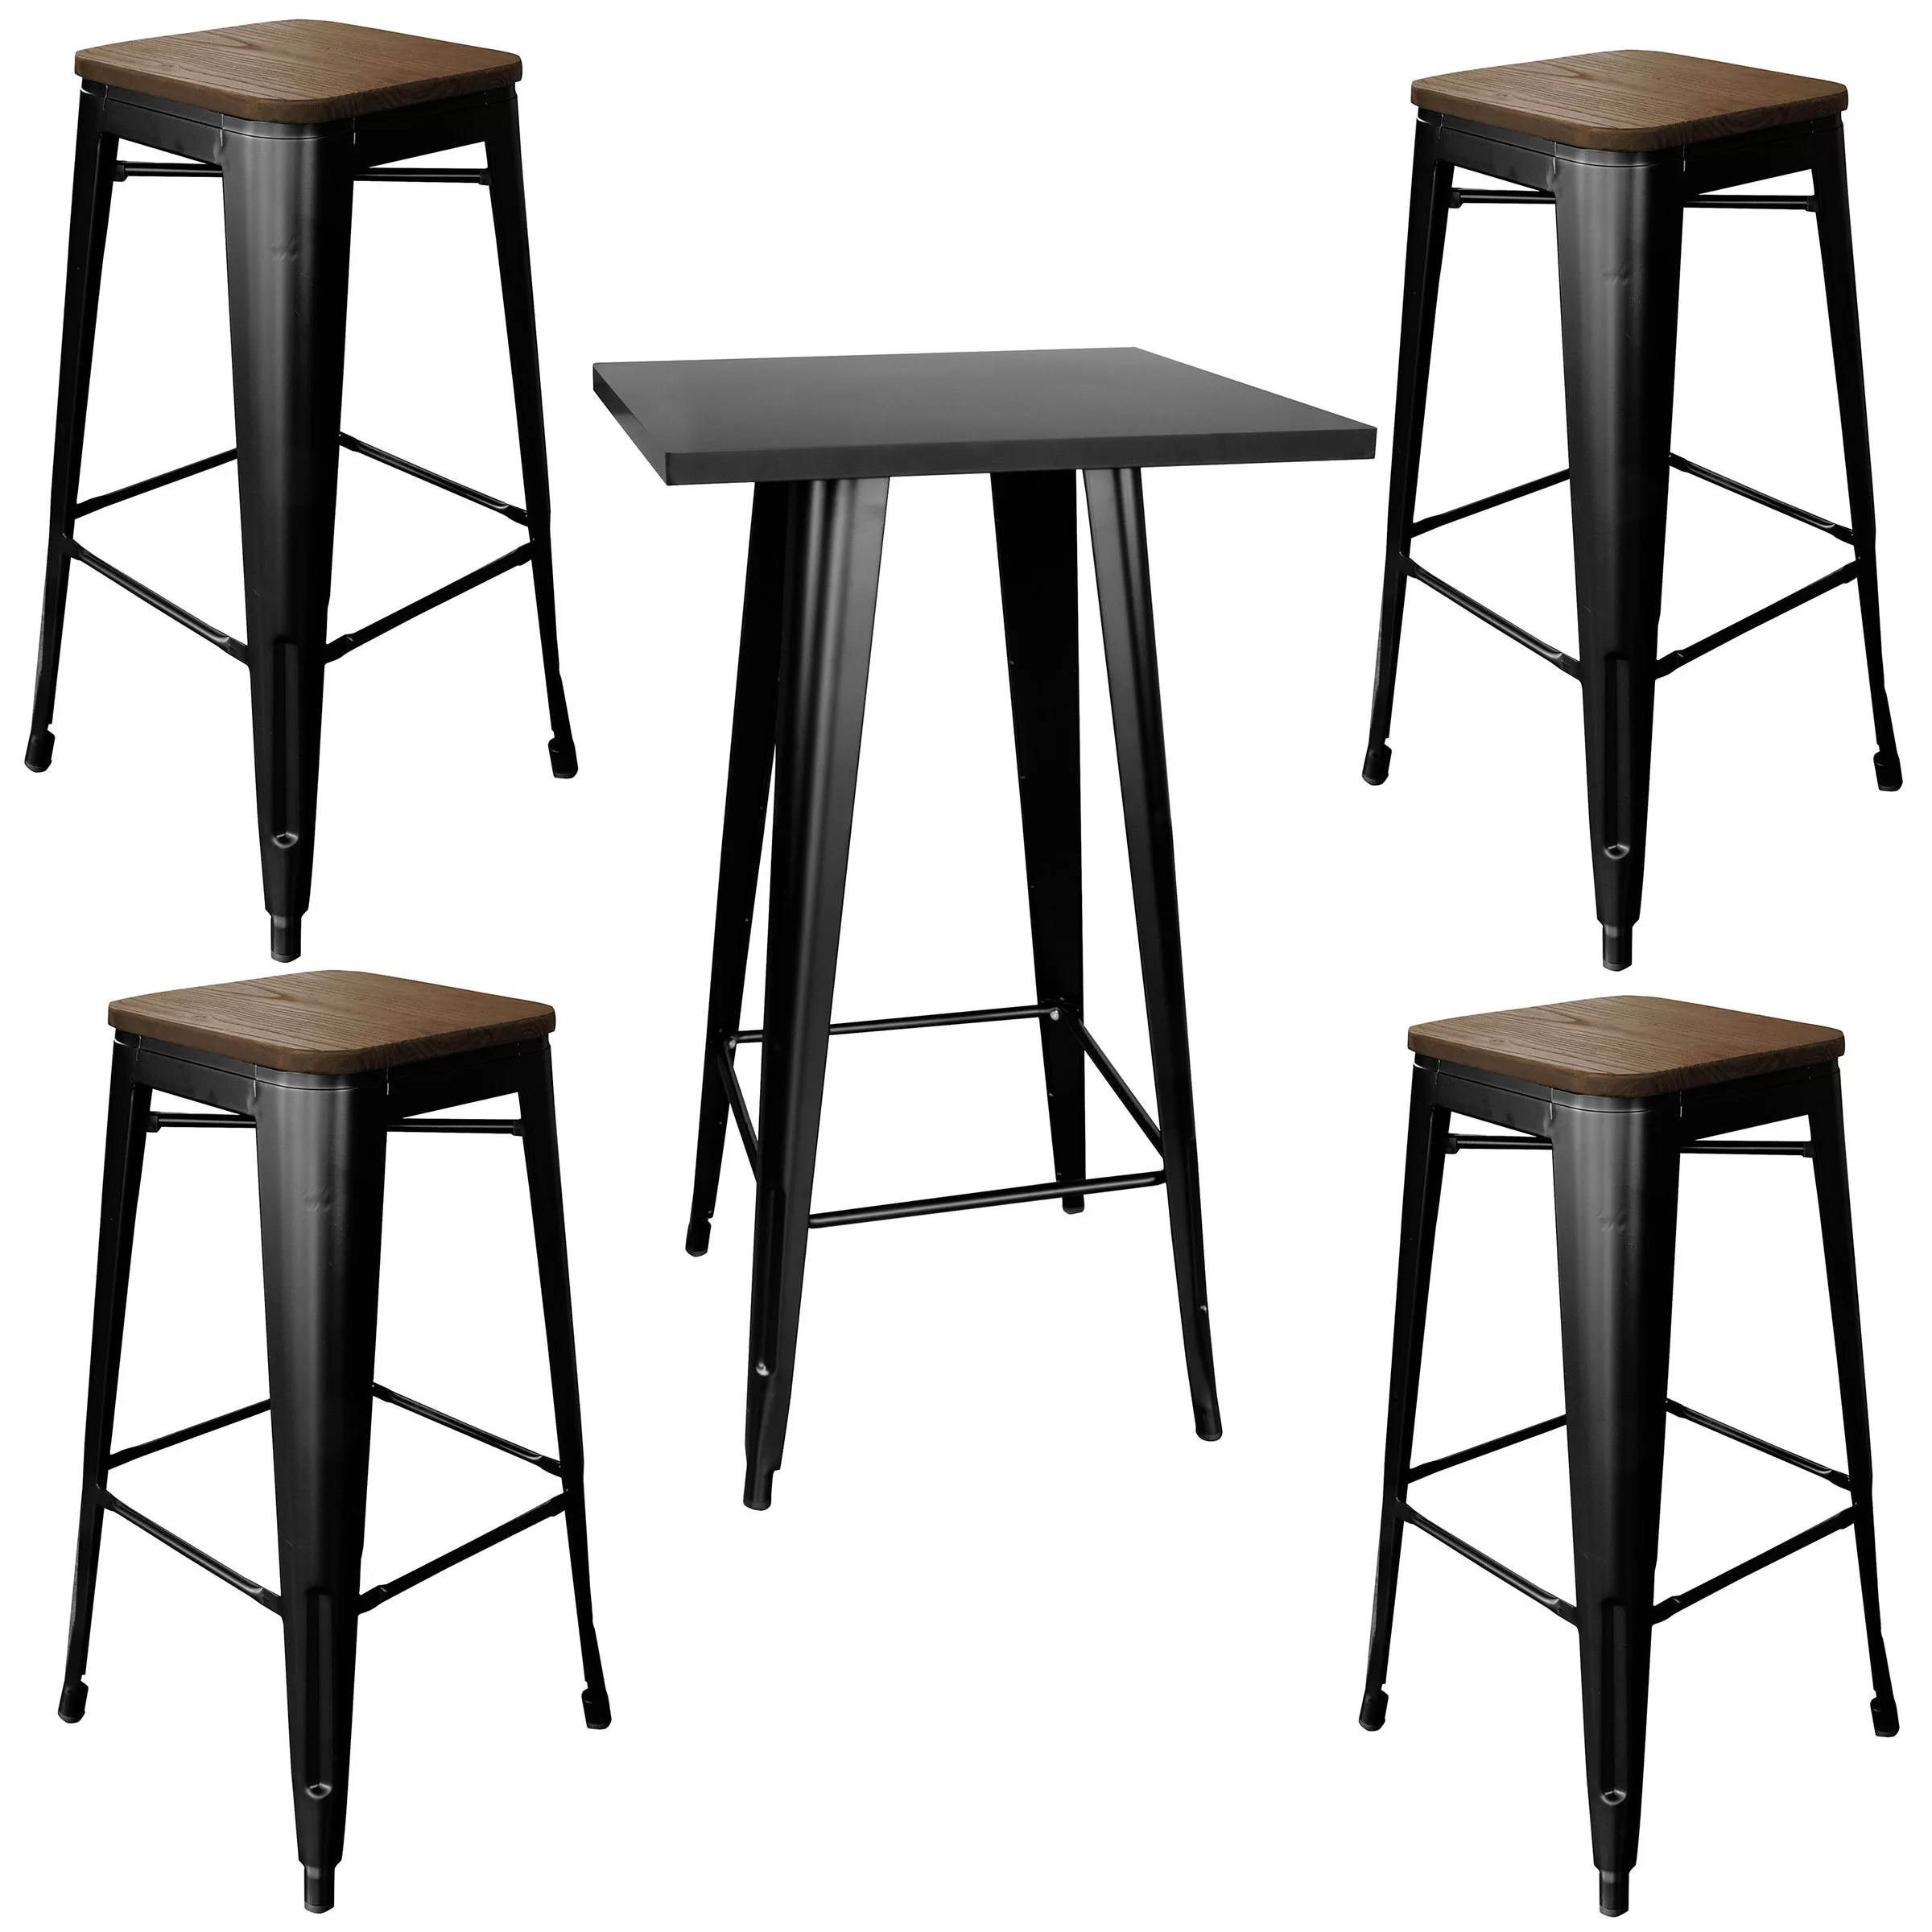 Wildon Home Pub Table Choice Image - Table Design Ideas